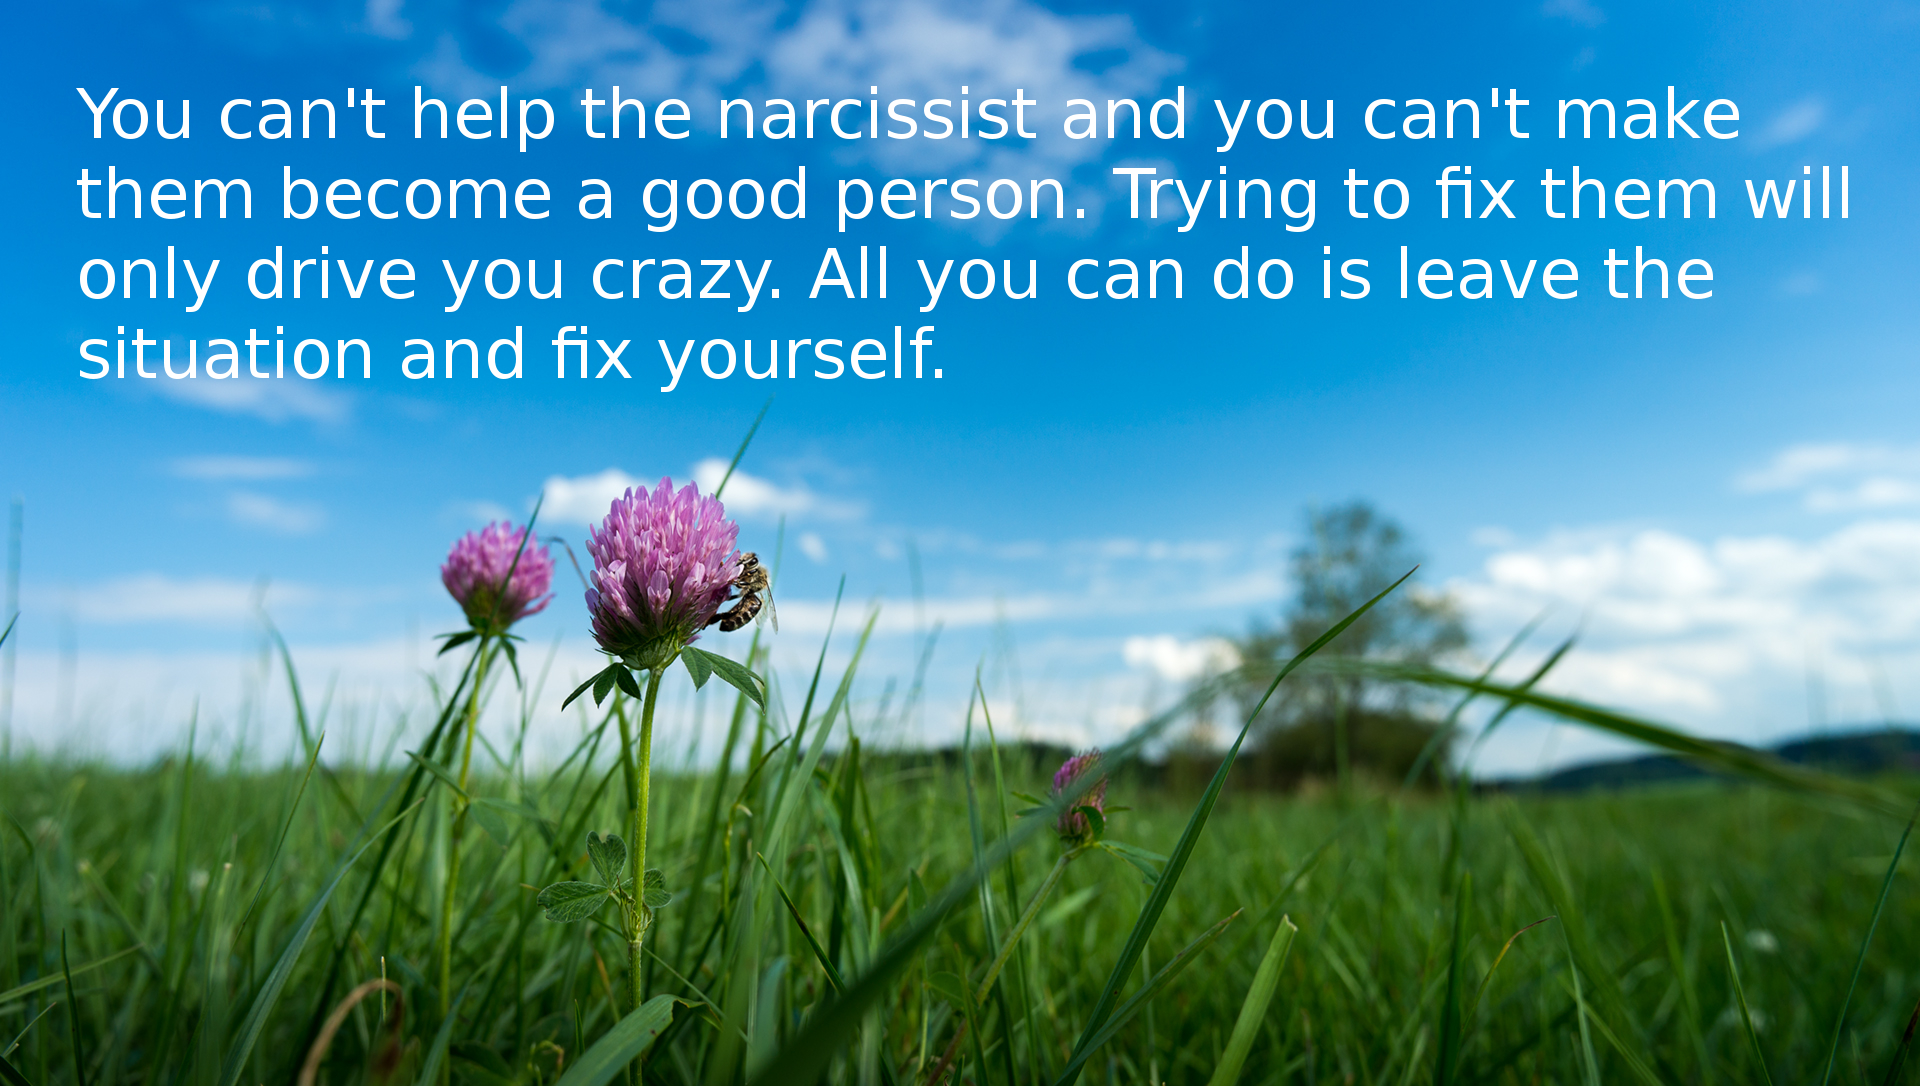 Can you change a narcissist